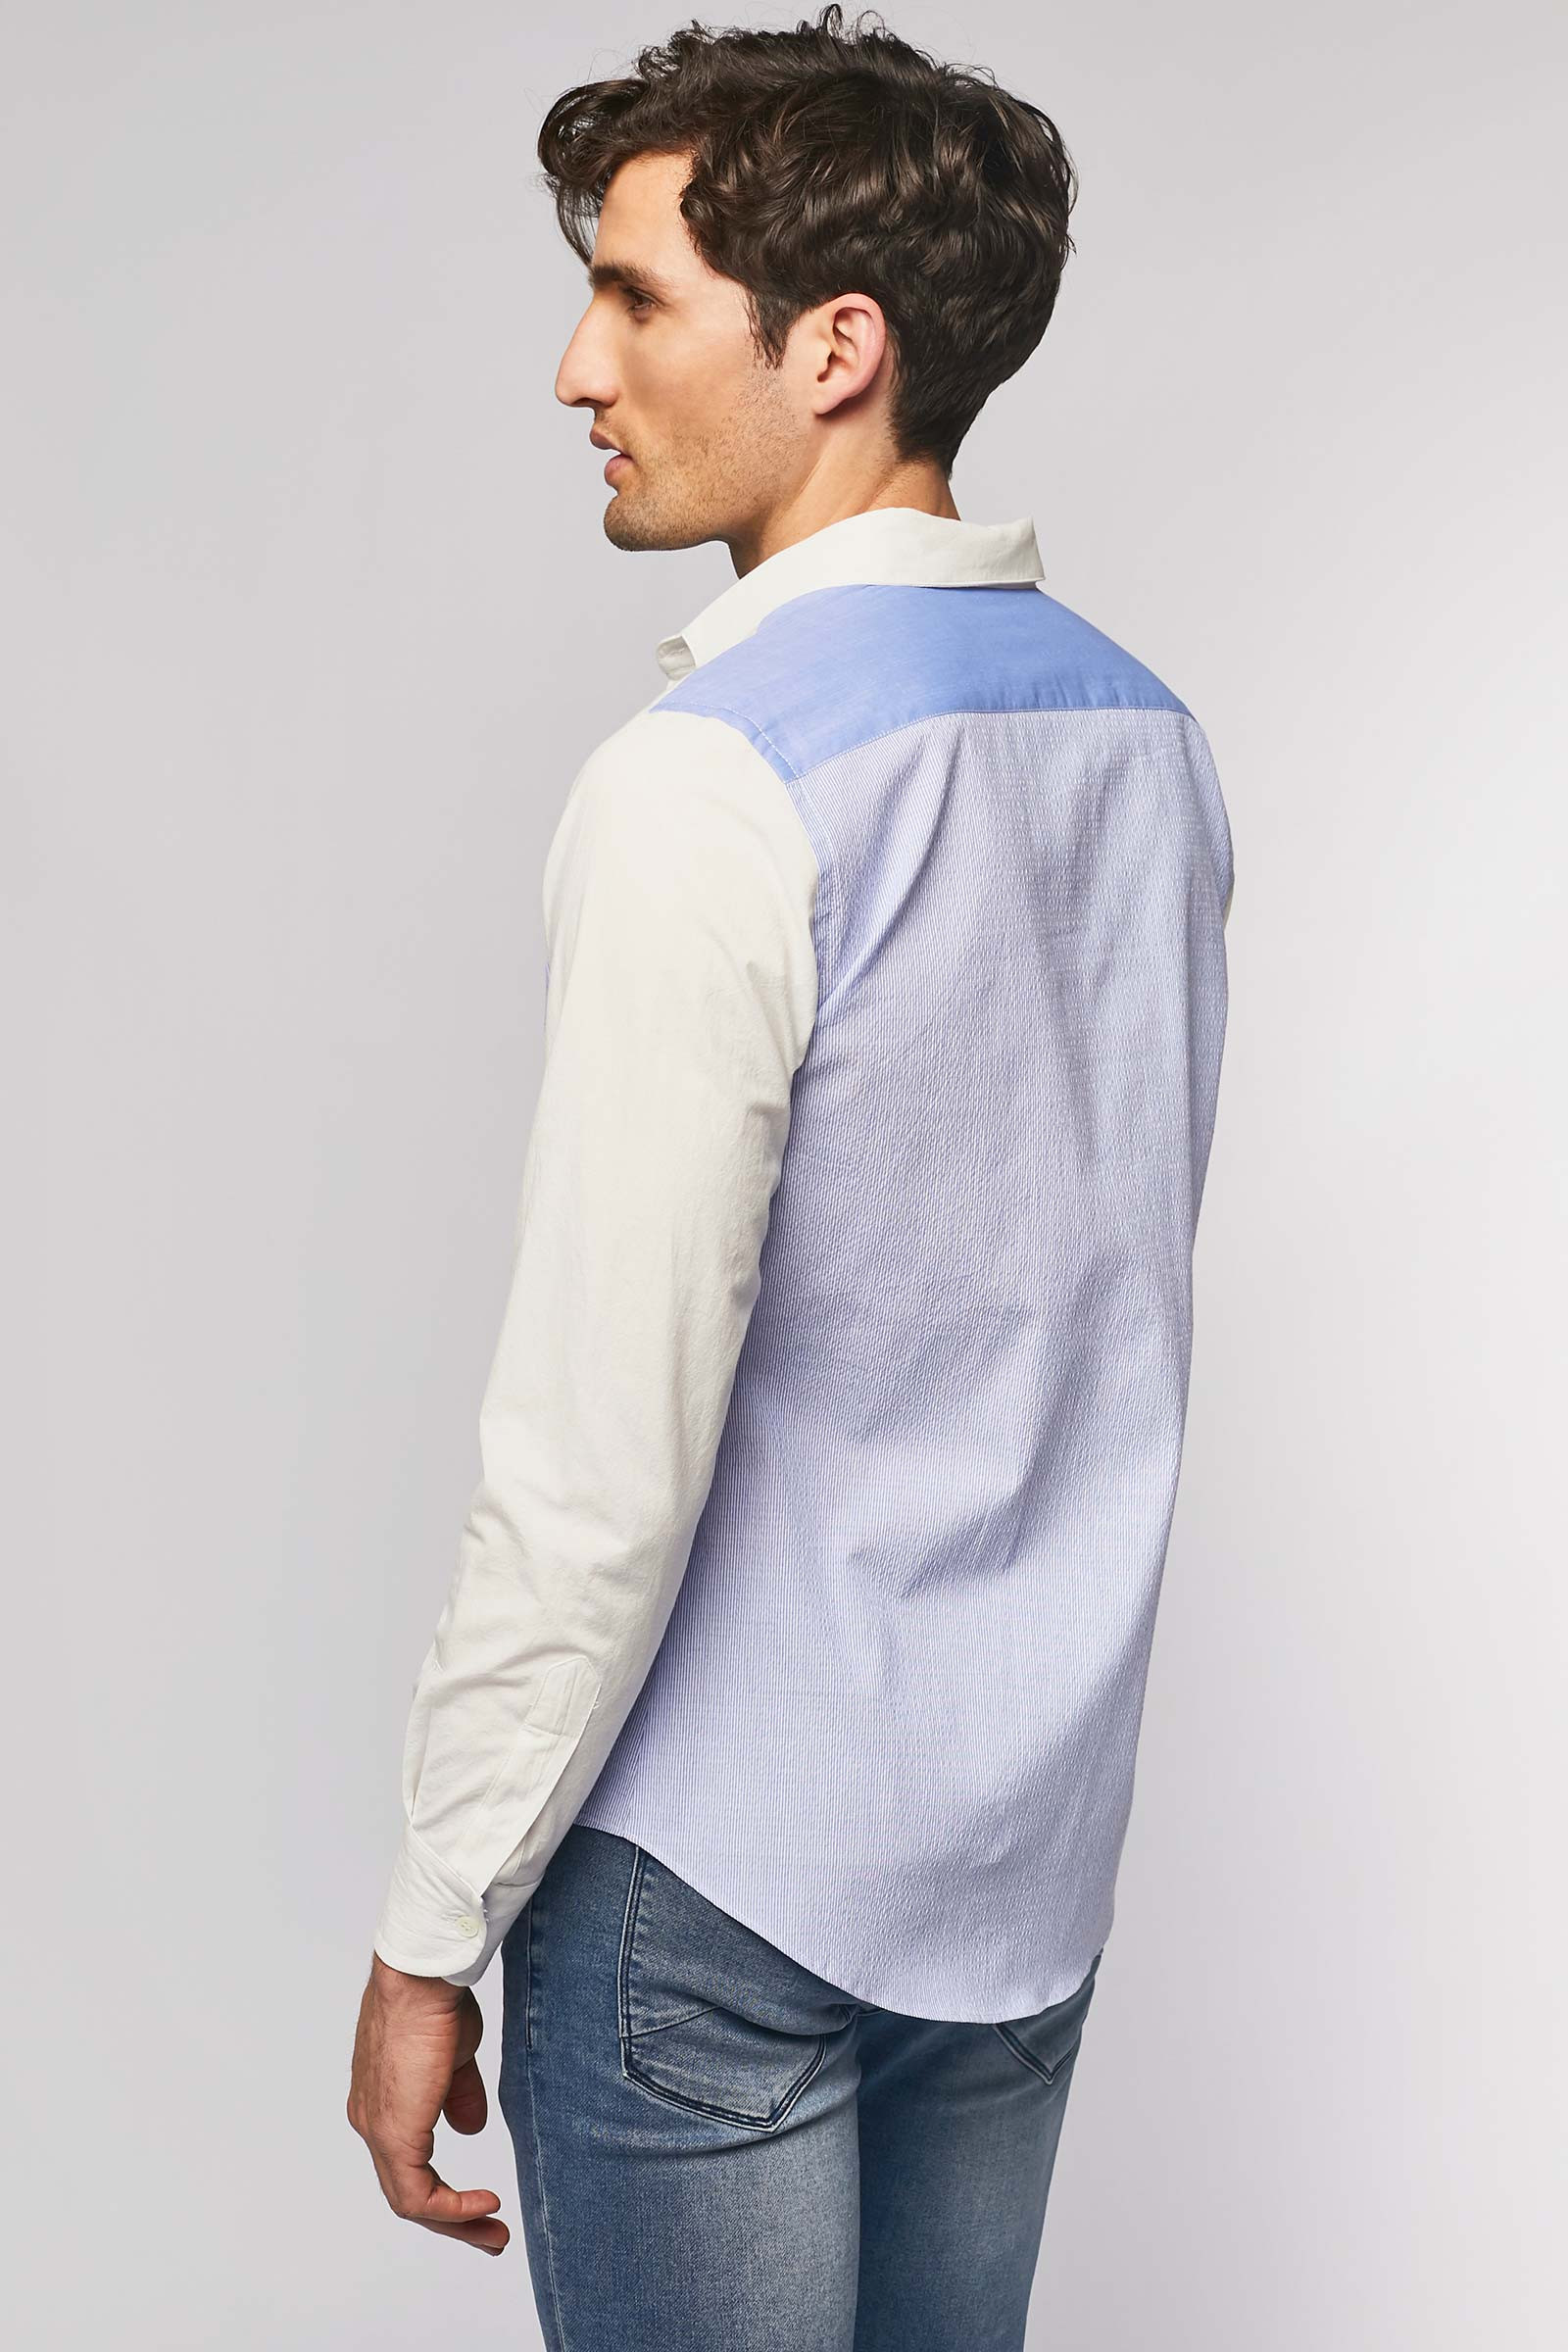 Two-tone shirt back